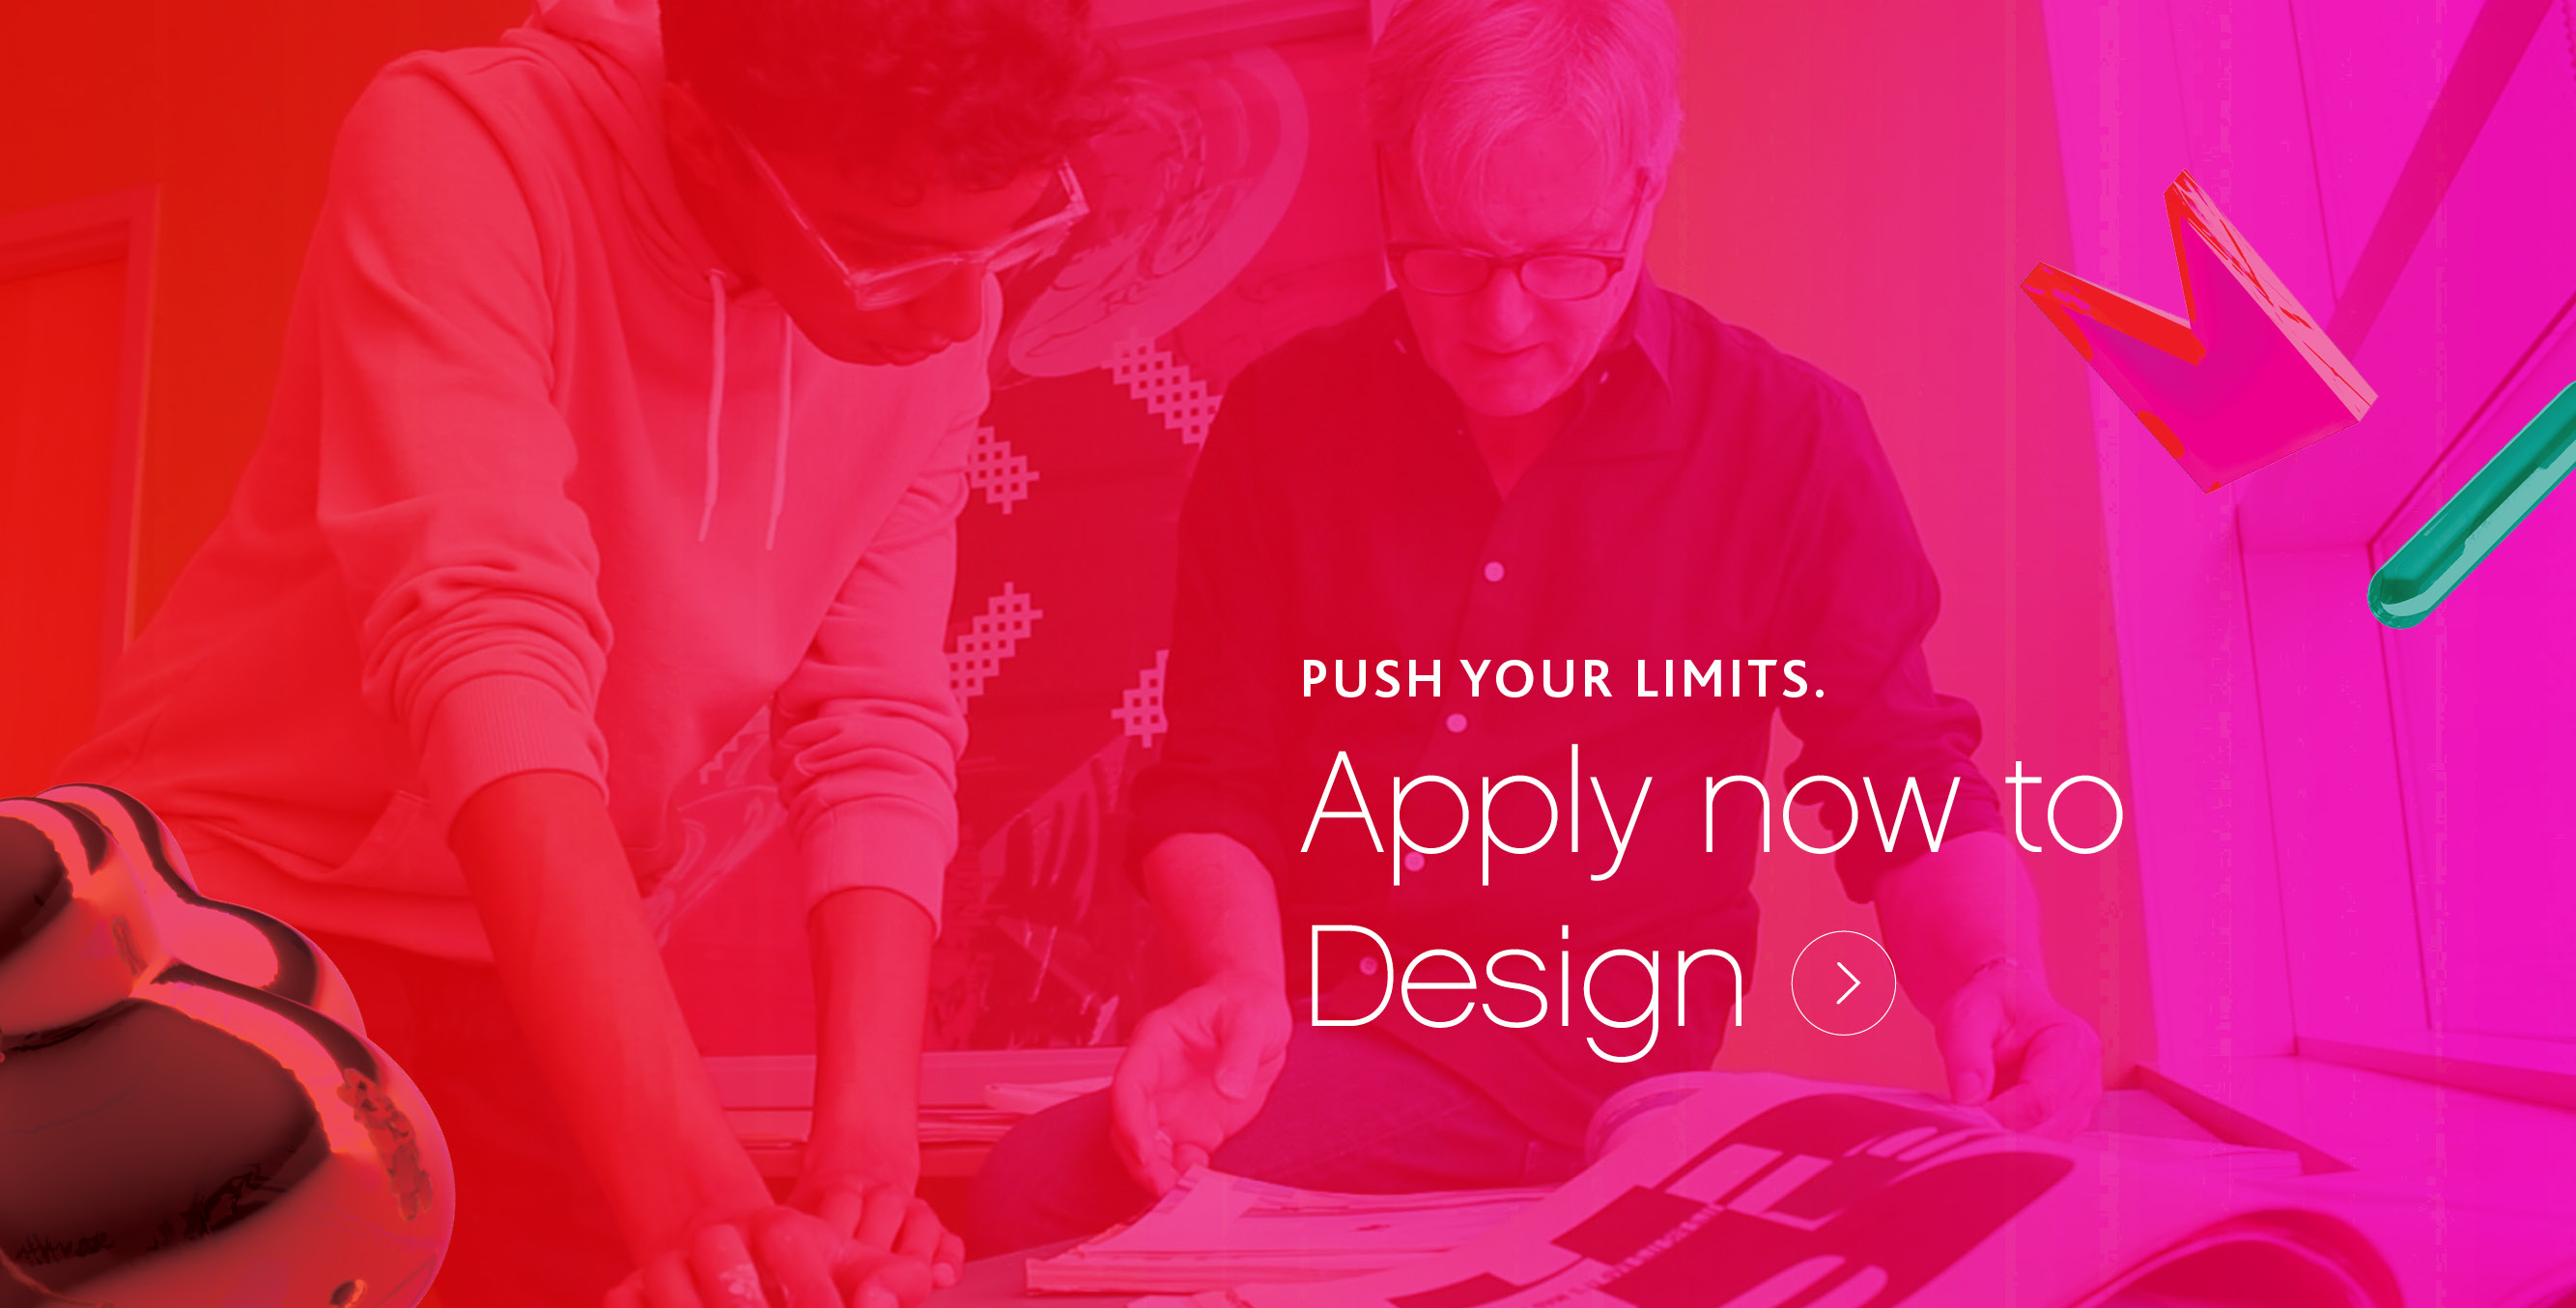 Apply now to Design